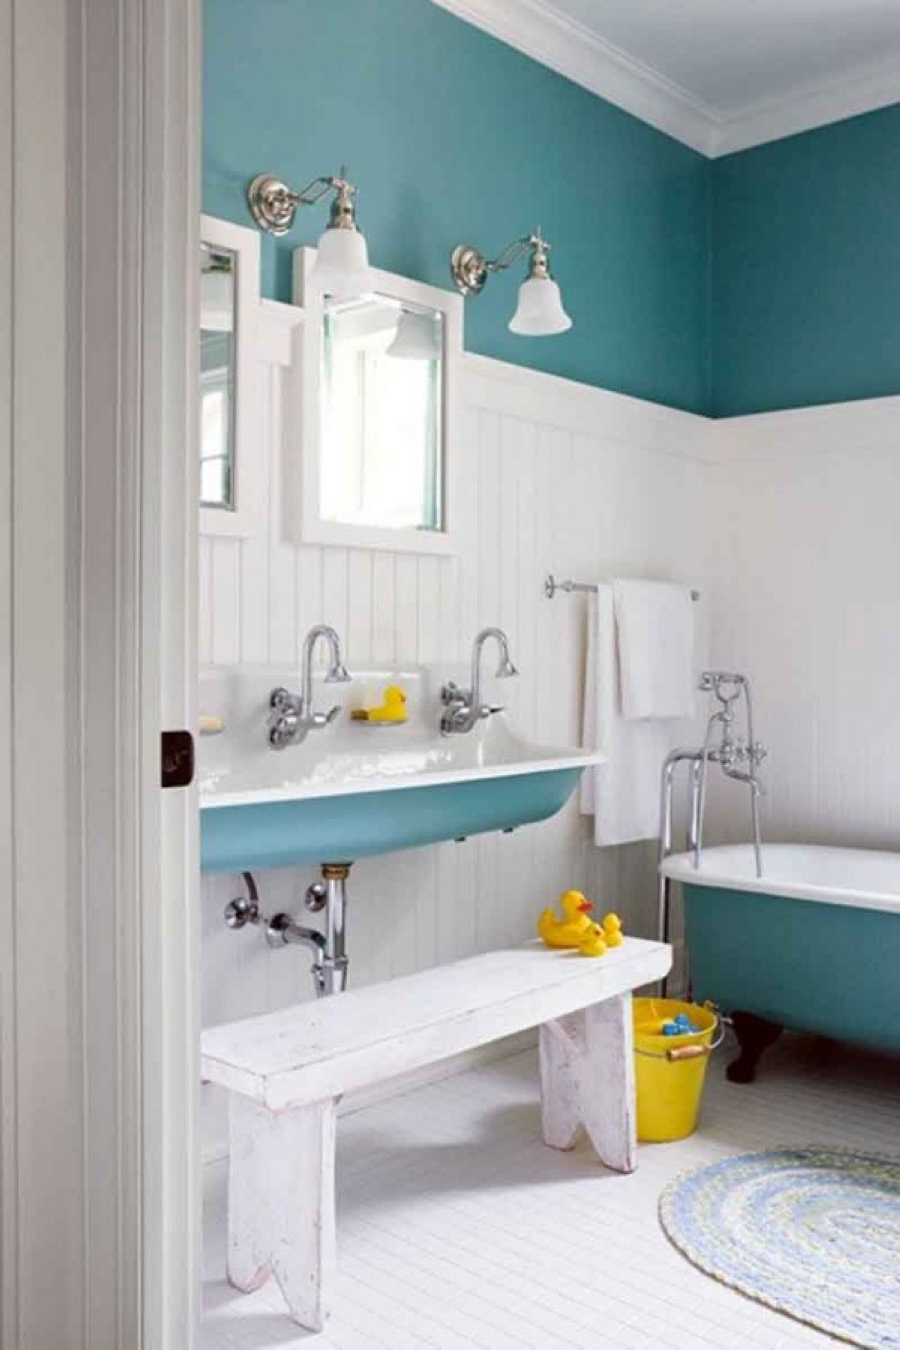 Turquoise and grey bathroom - Cool Oval Grey Rug With Turquoise Kids Bathroom Painting Idea Also White Bench Beside Yellow Bucket